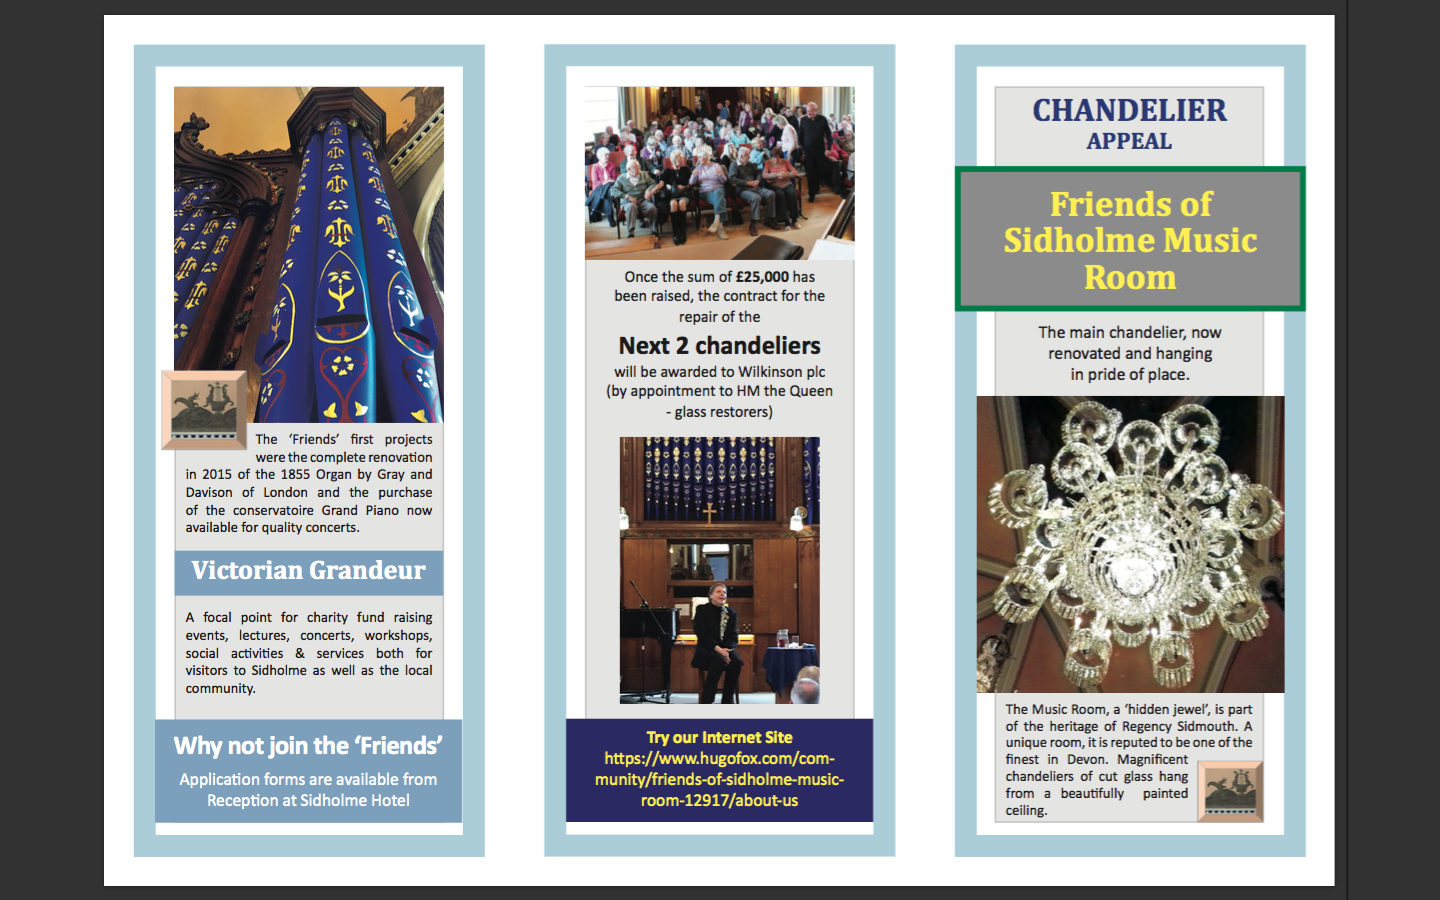 Friends of Sidholme Music Room Tri-Fold Brochure for Chandelier Project